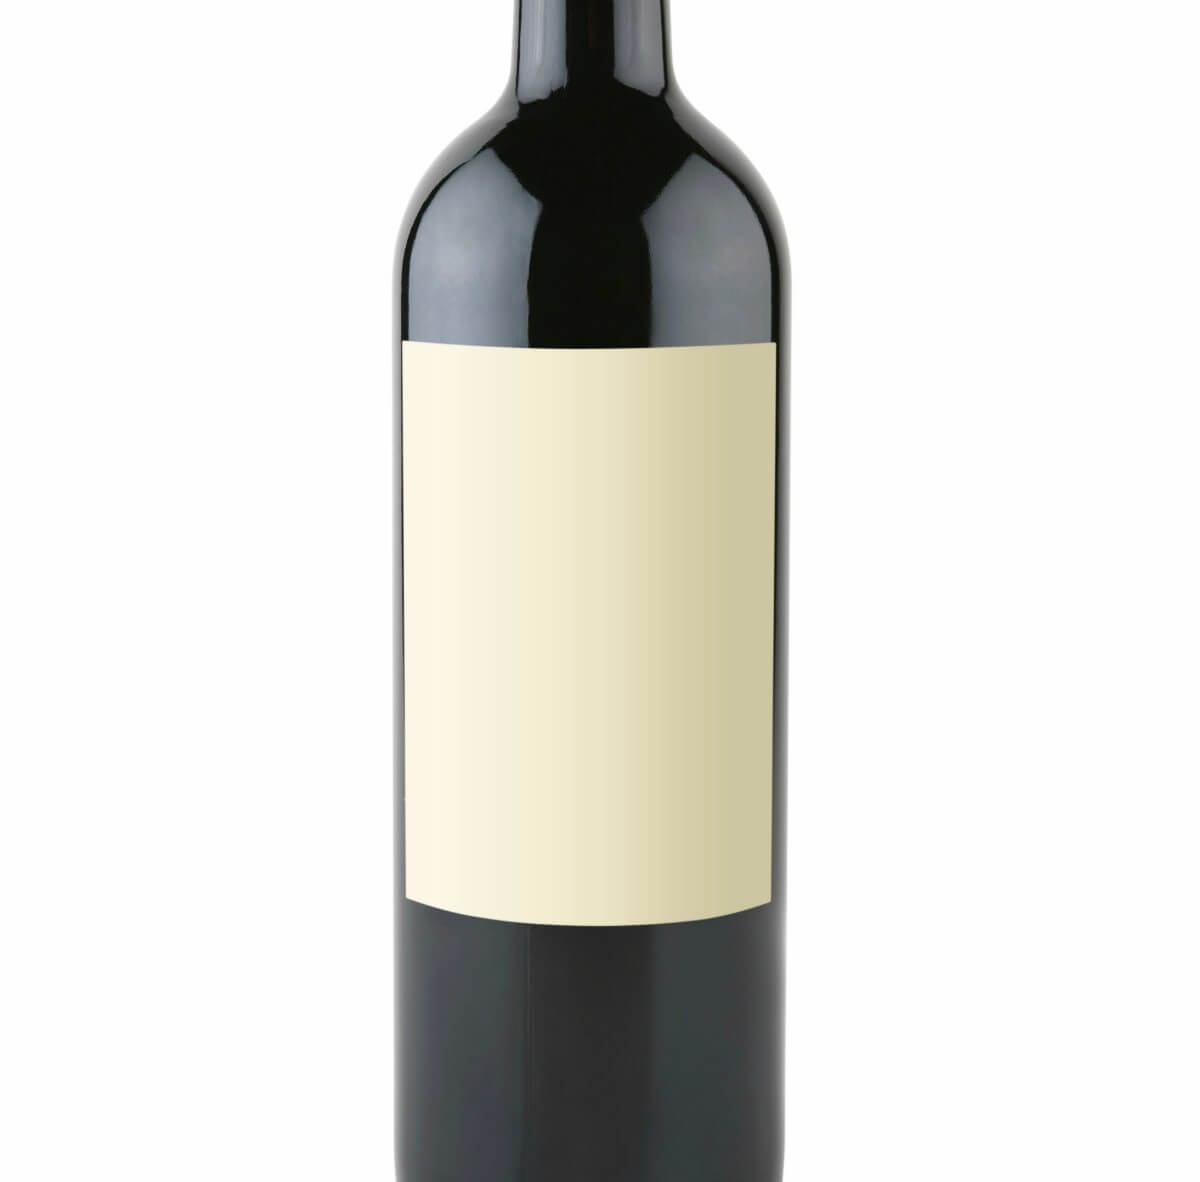 Finding Free Product Label Templates | Thriftyfun Intended For Blank Wine Label Template